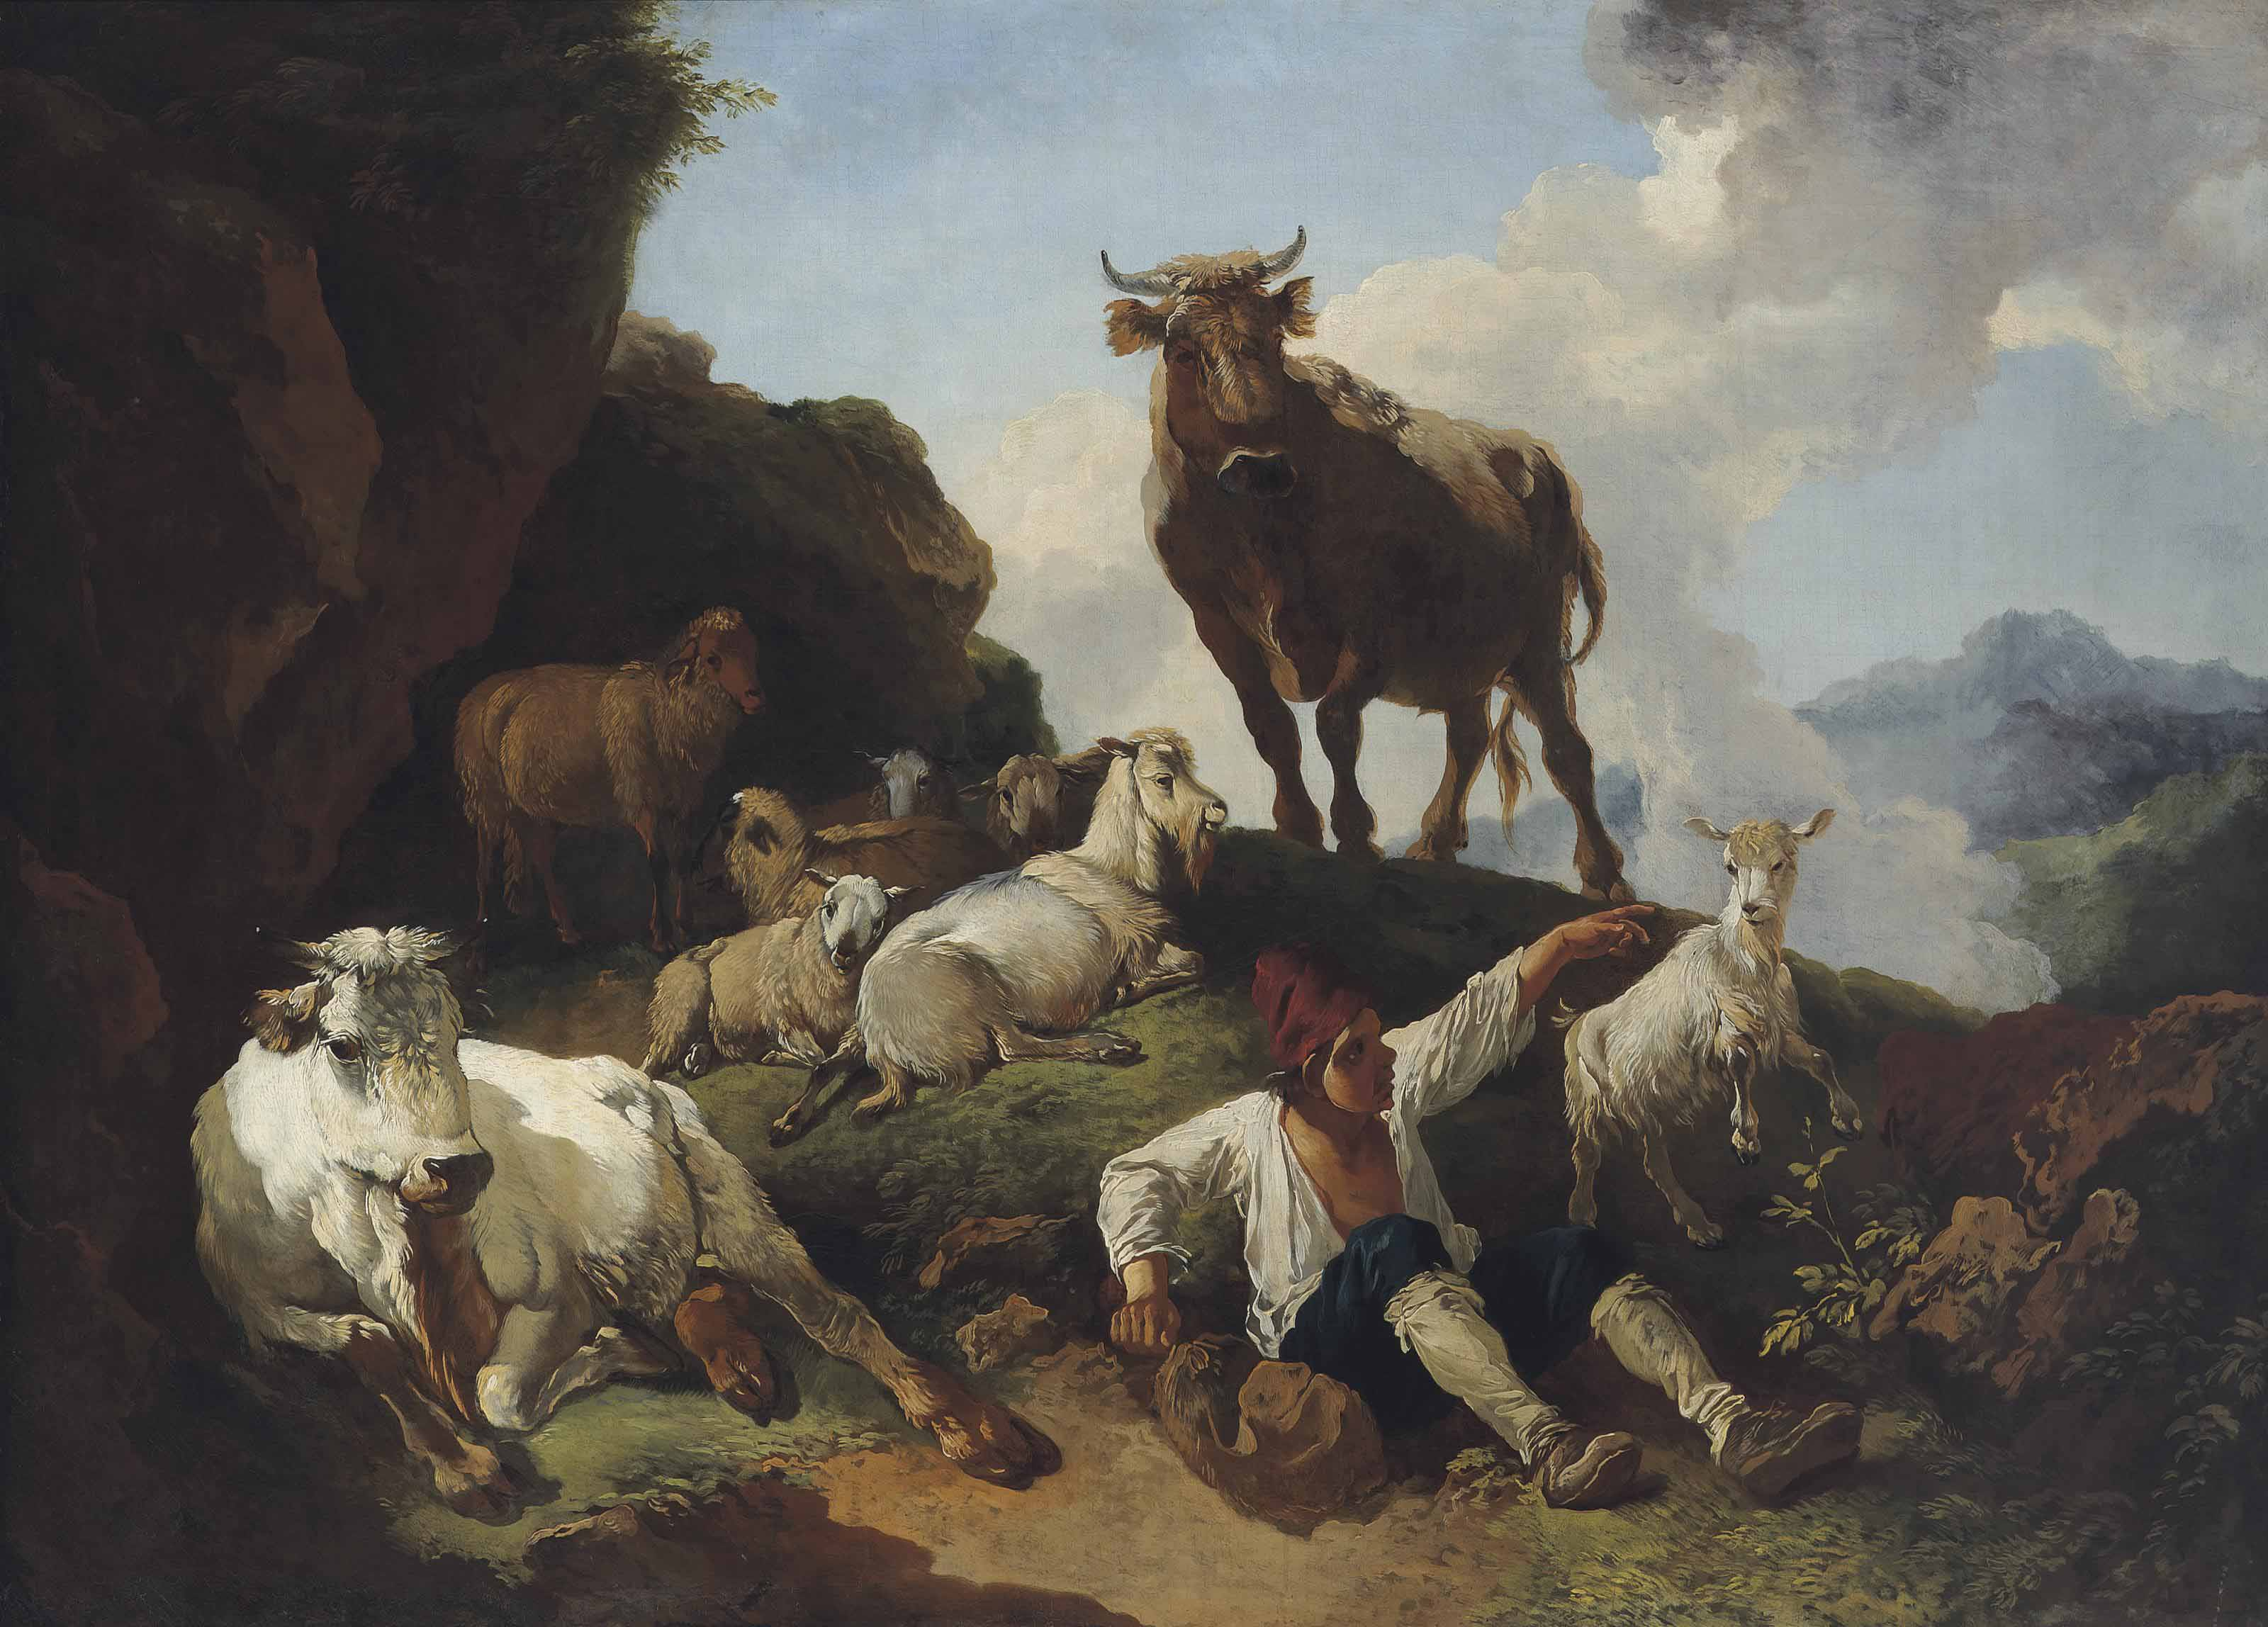 A shepherd resting with sheep, goats and a bull, in a mountainous landscape